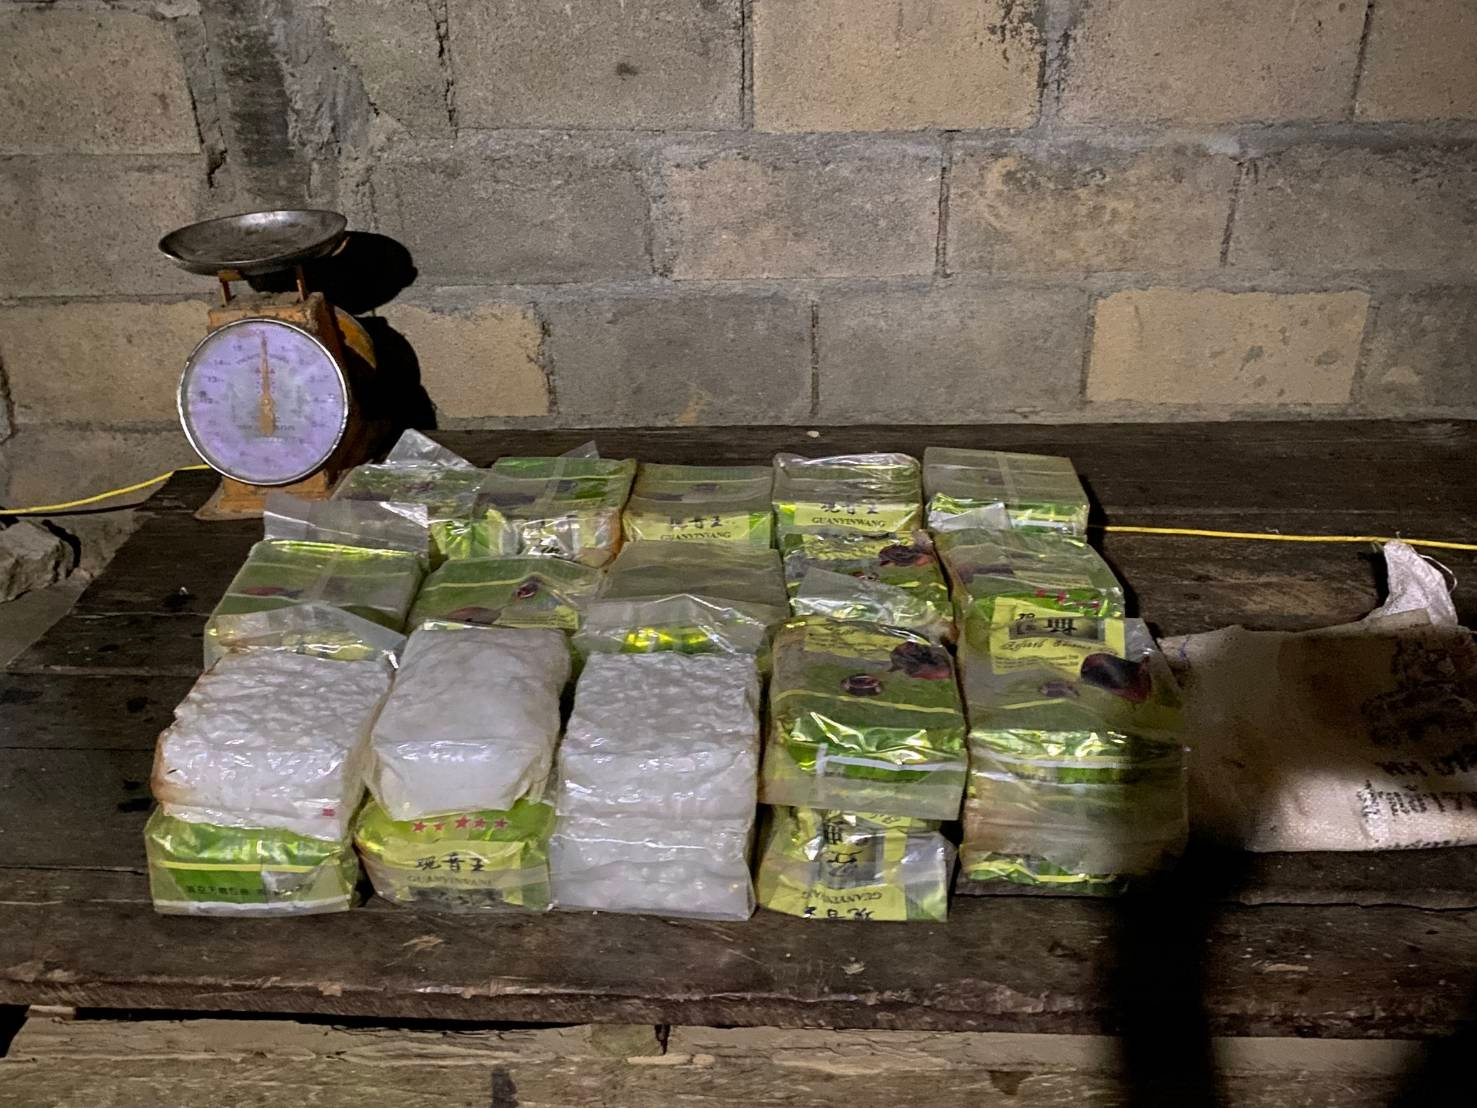 Packs of crystal methamphetamine found in a room beneath a woman's house in Pattani's Sai Buri district on Thursday night. (Photo: Abdullah Benjakat)